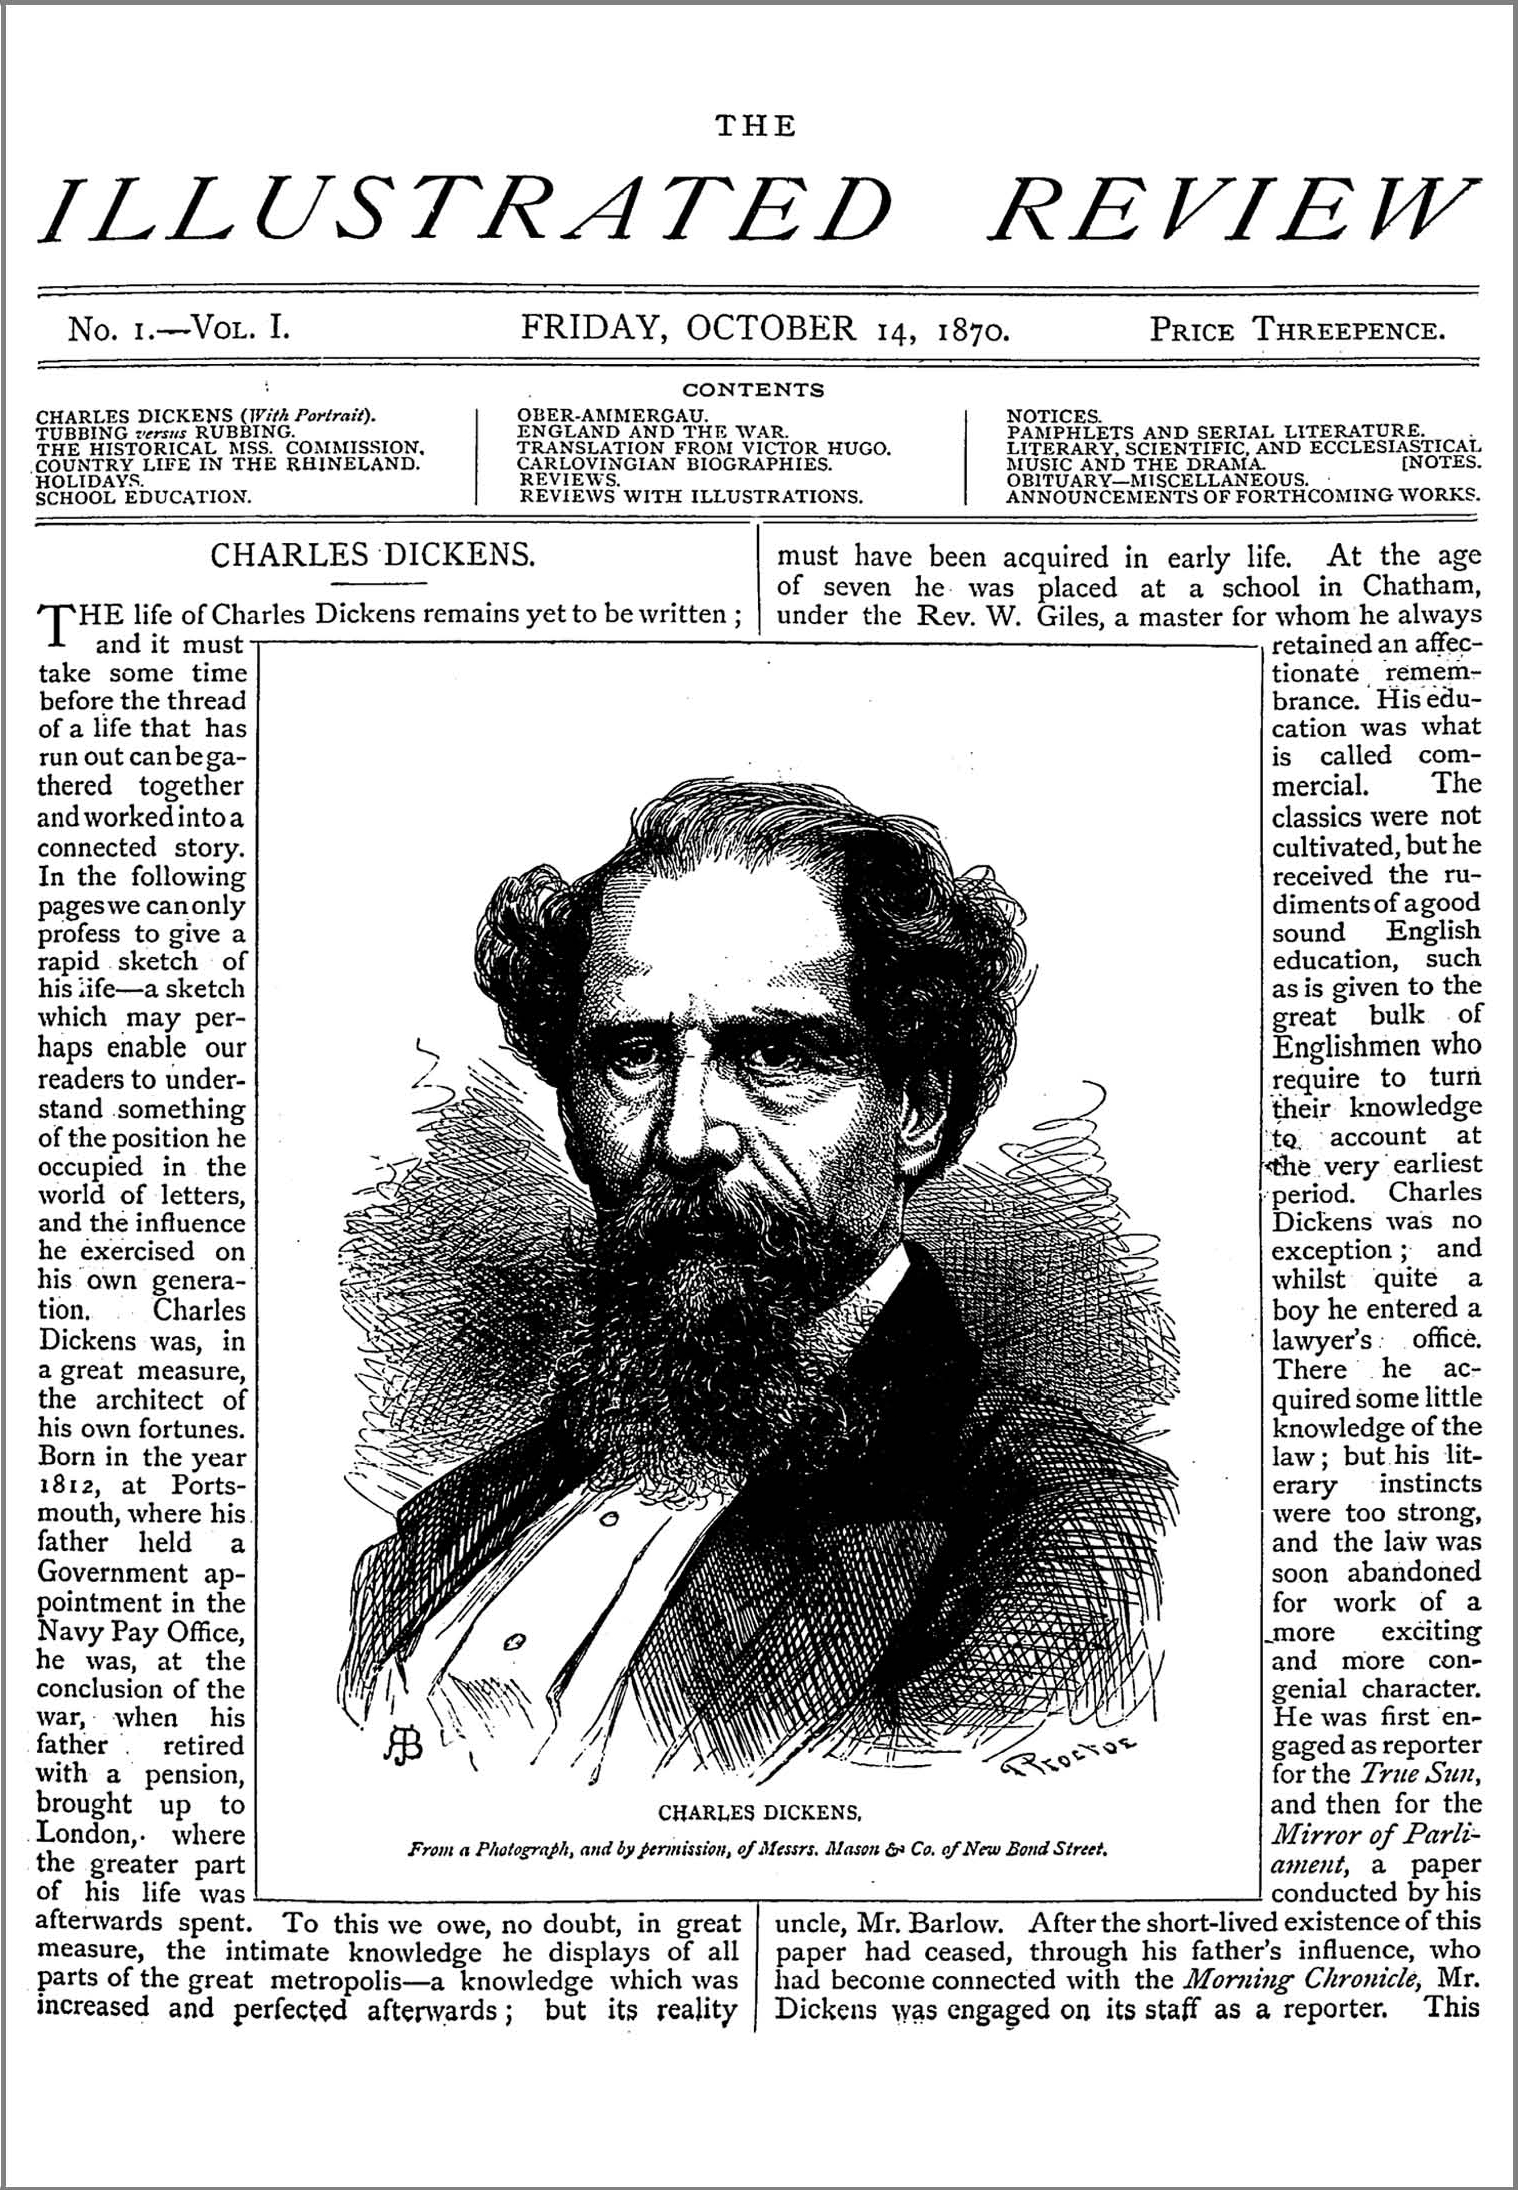 Figure 11: Homage to Charles Dickens in the Illustrated Review, 14 Oct. 1870: 1.